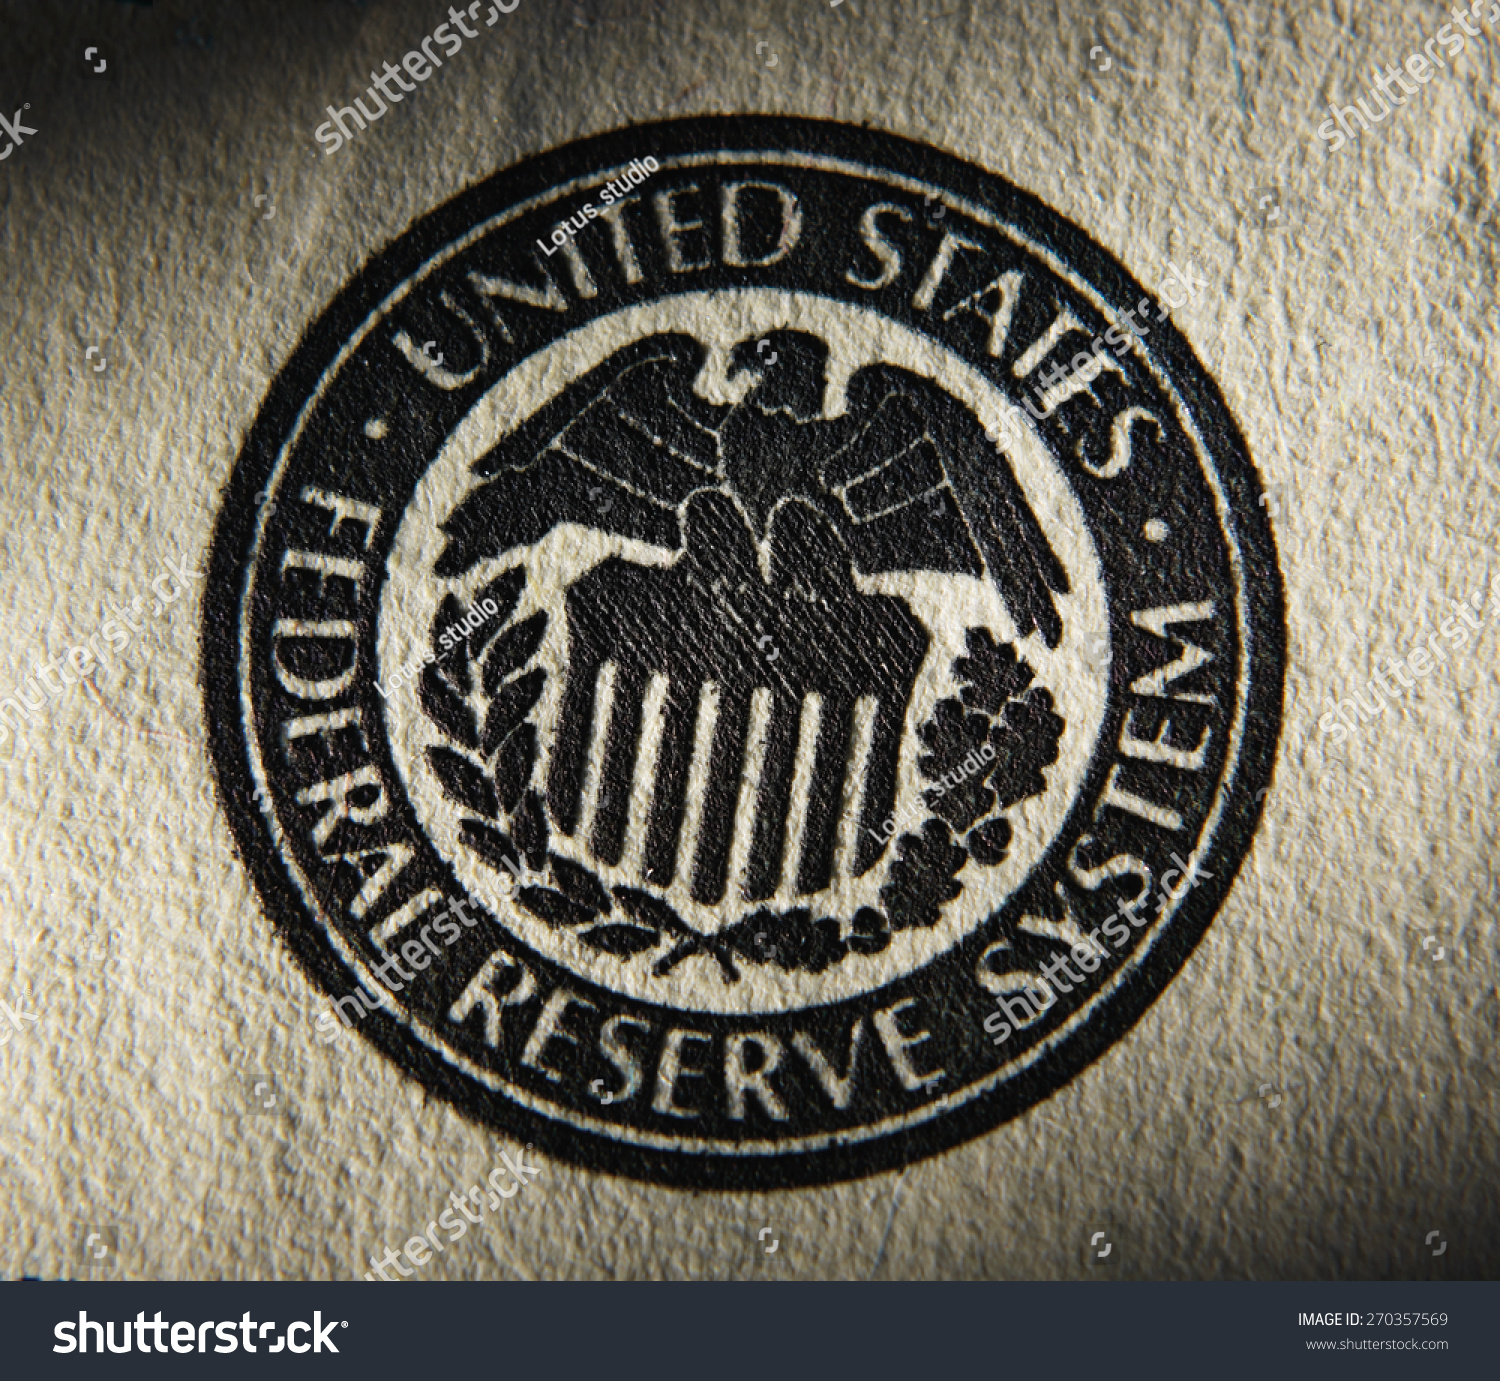 federal reserve system works united states Learn what the federal reserve is, how it works, and what function it serves in the economy of the united states.